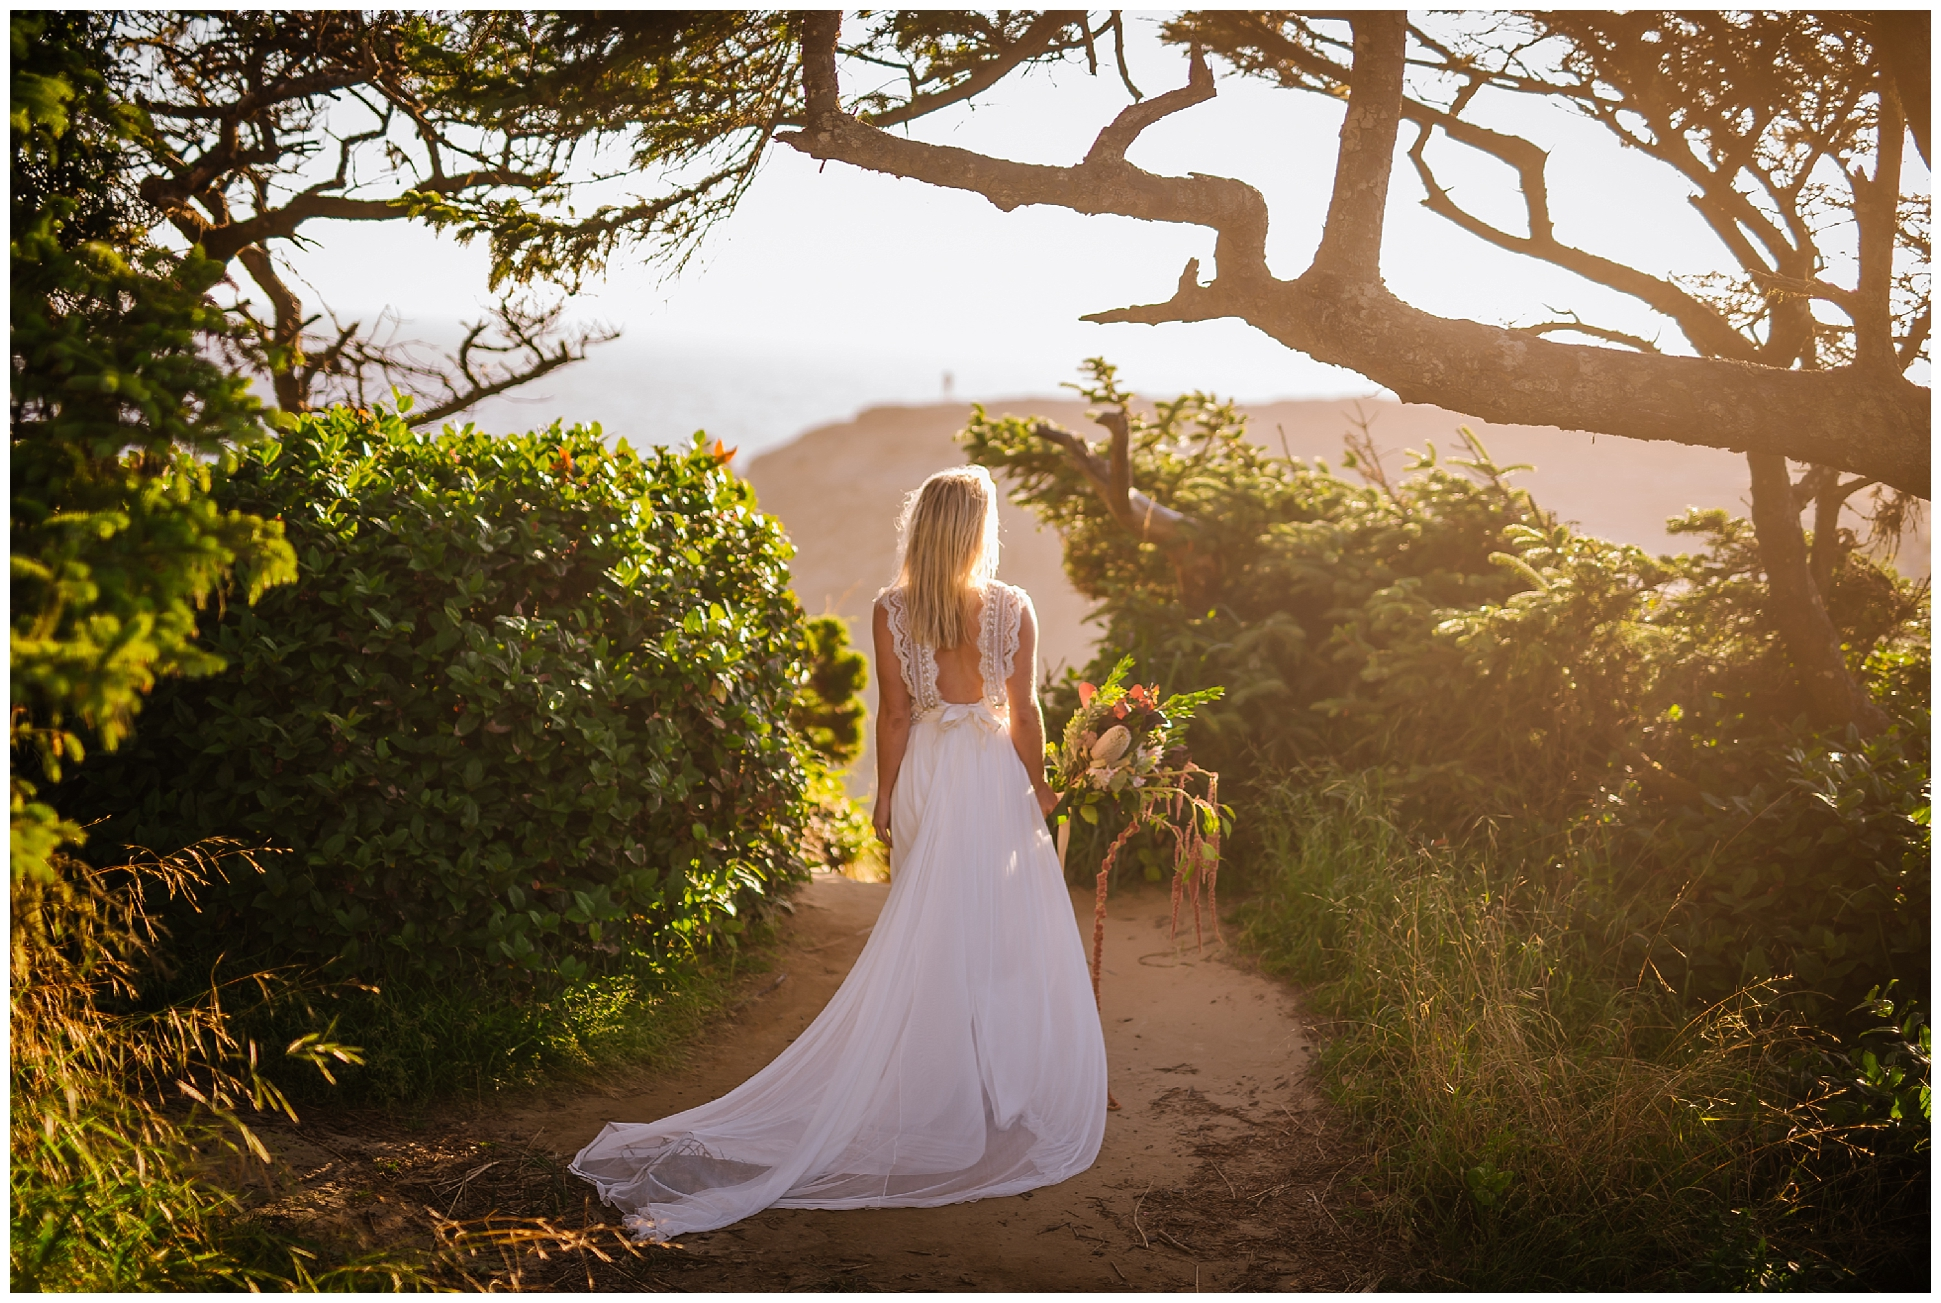 Cape-kiwanda-bridal-portrait-destination-wedding-photographer_0025.jpg